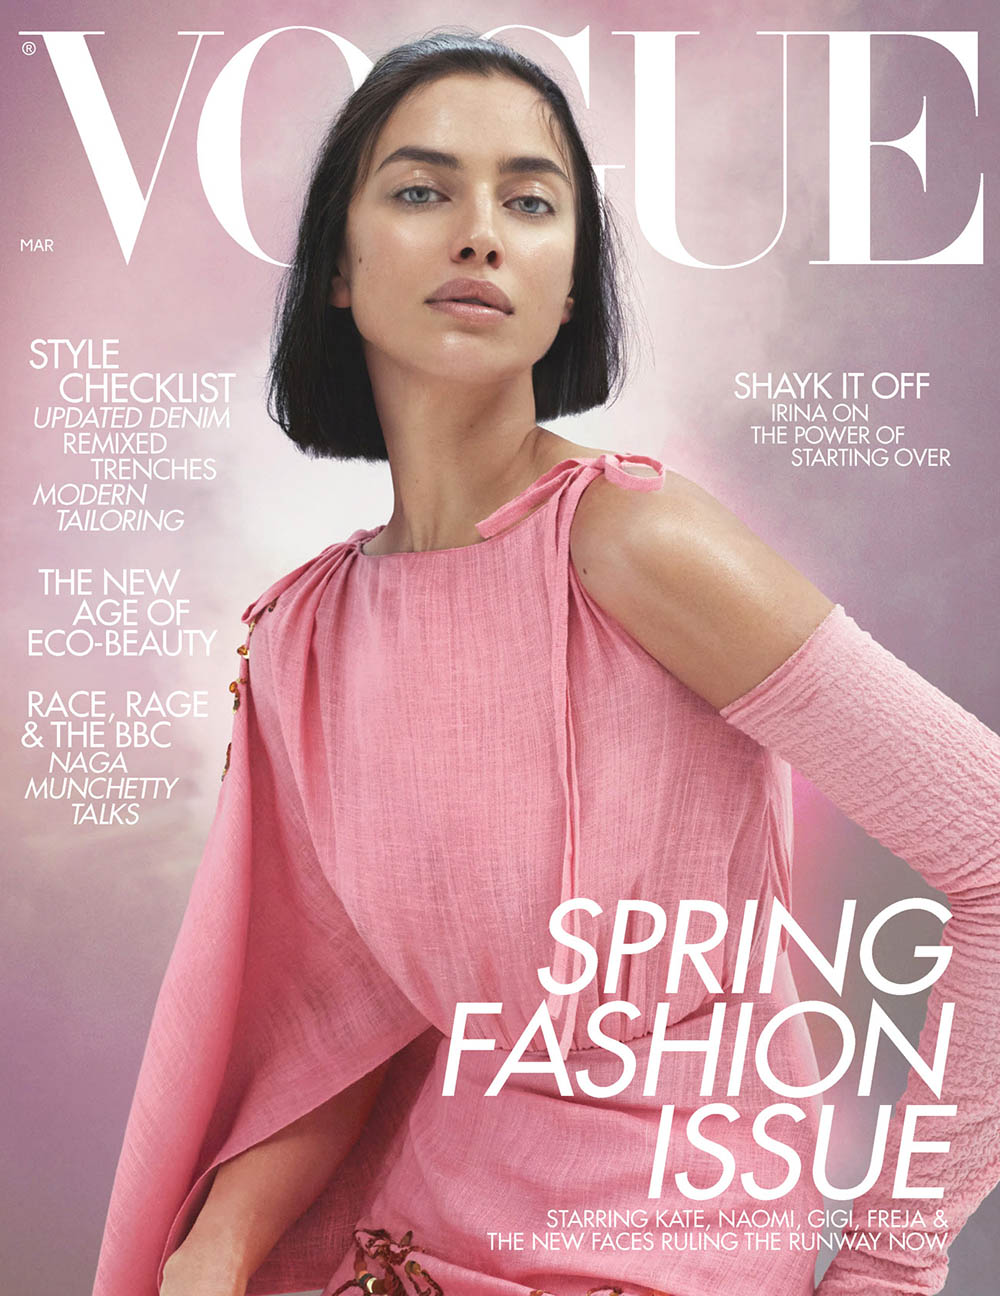 Irina Shayk covers British Vogue March 2020 by Mert & Marcus